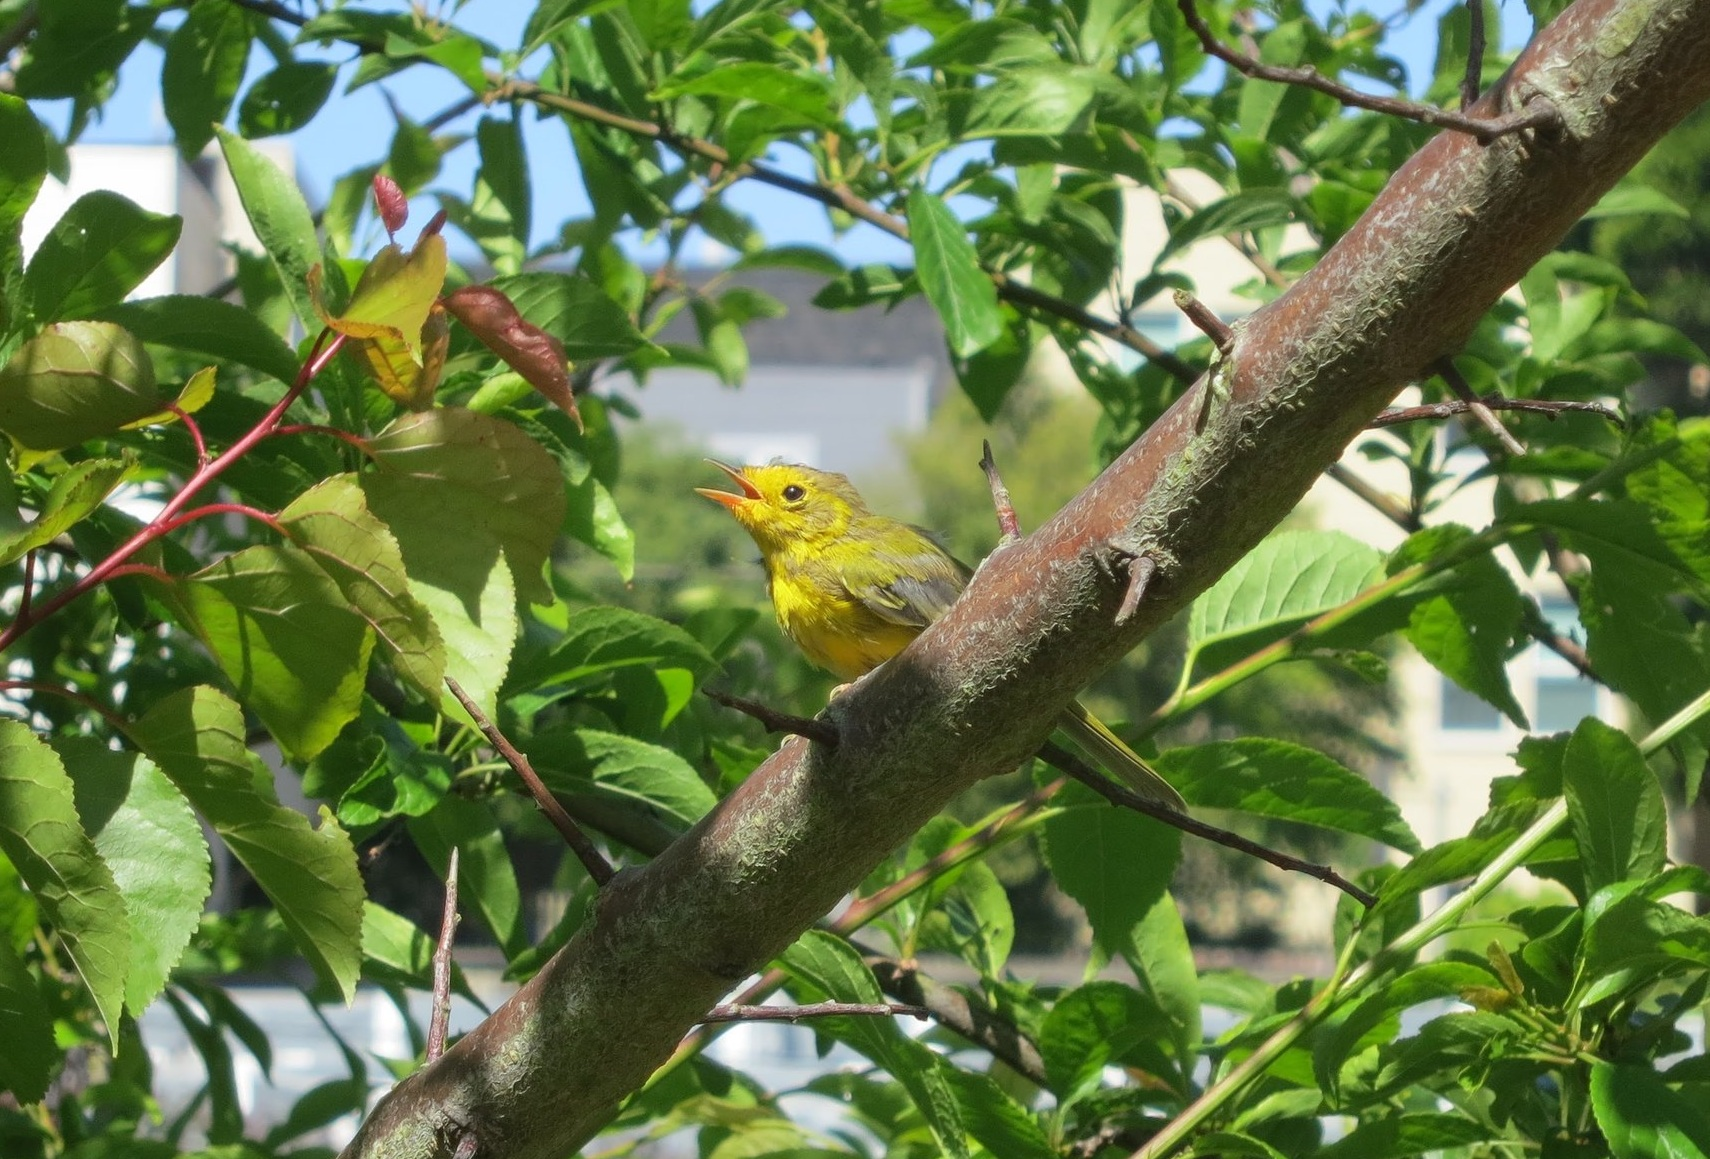 A young Western Tanager enjoying the foliage at GFE.